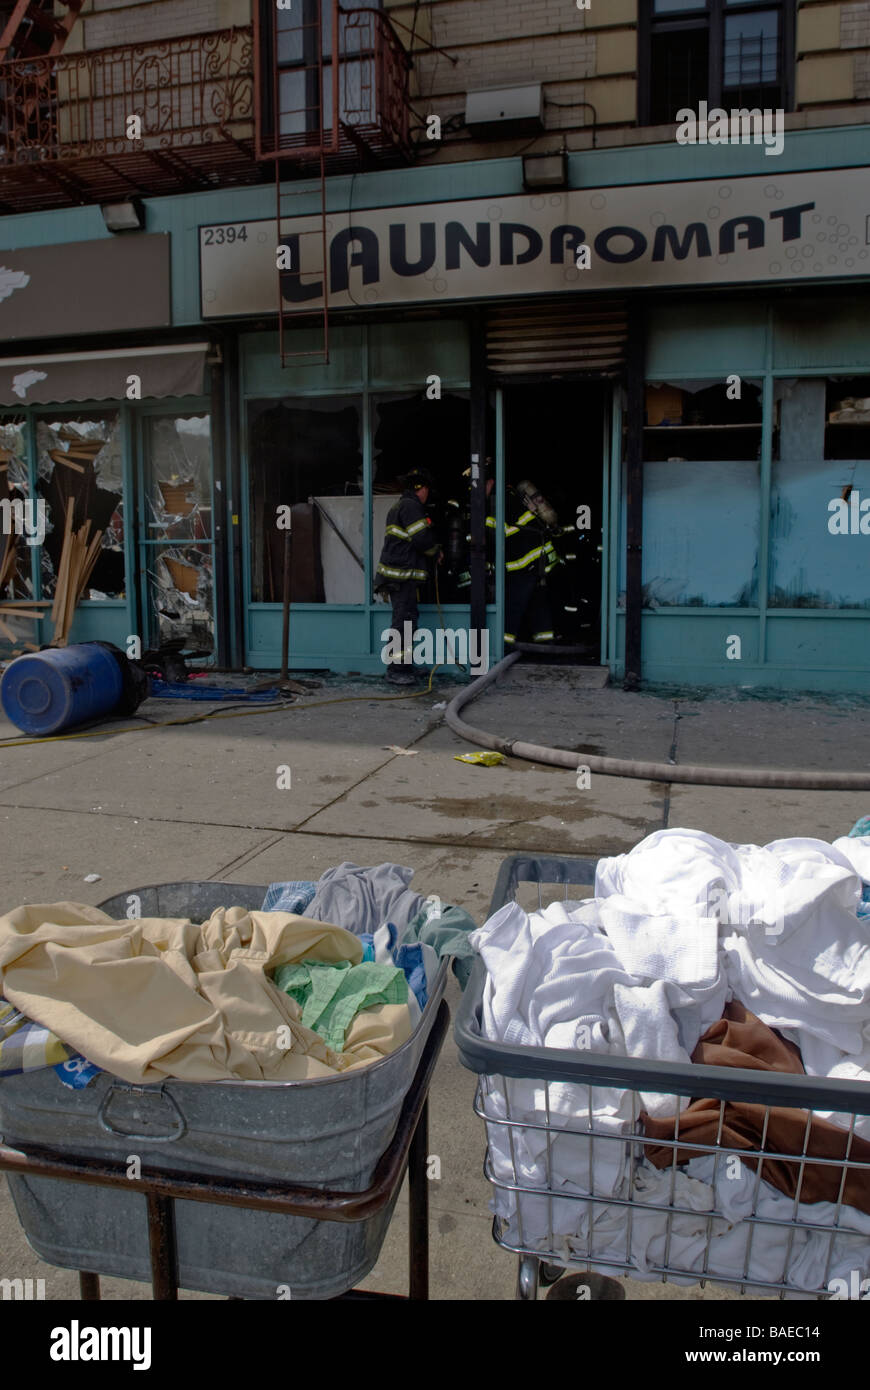 FDNY firefighters at an all hands fire in a laundromat in Harlem in New York - Stock Image